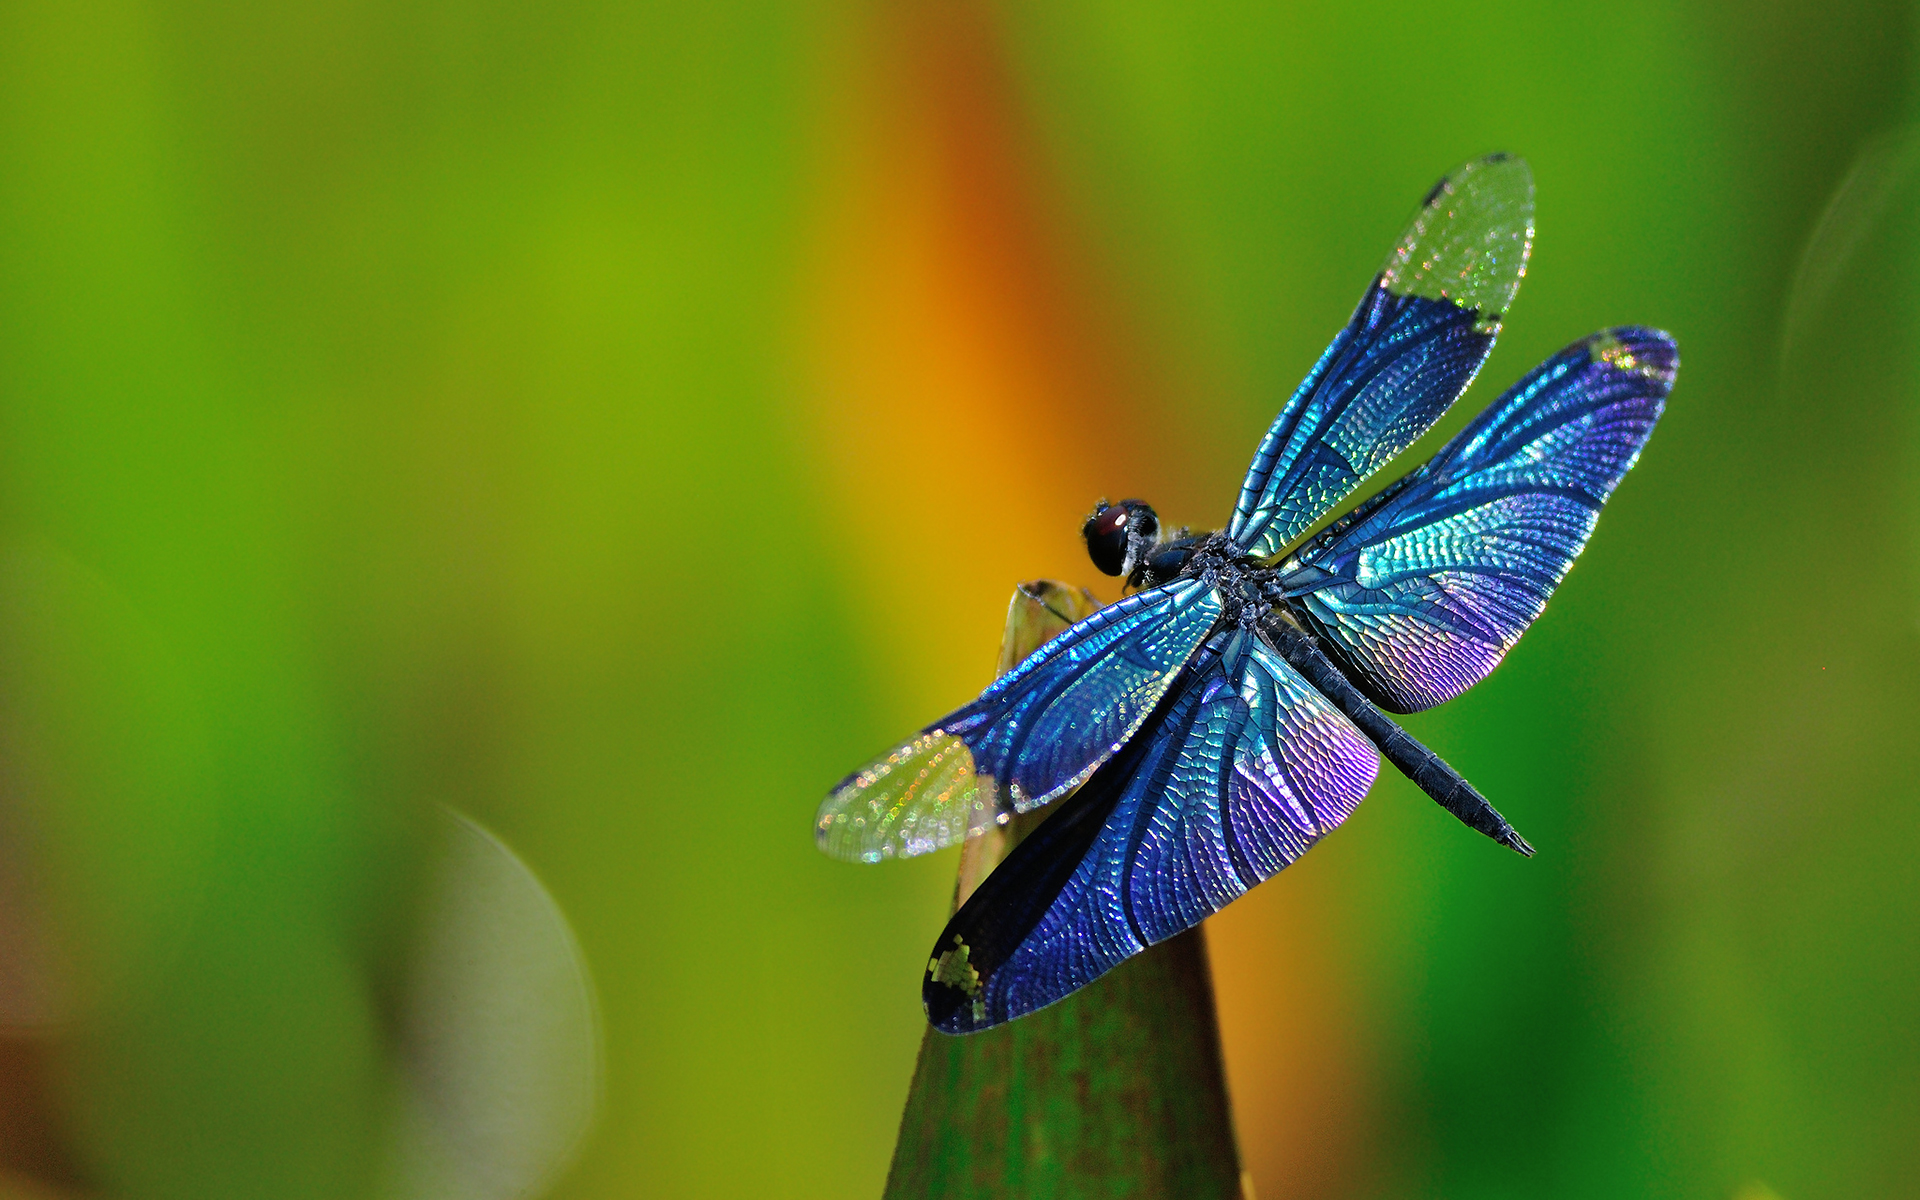 Myths & Legends About Dragonflies & Their Symbolism in Feng Shui